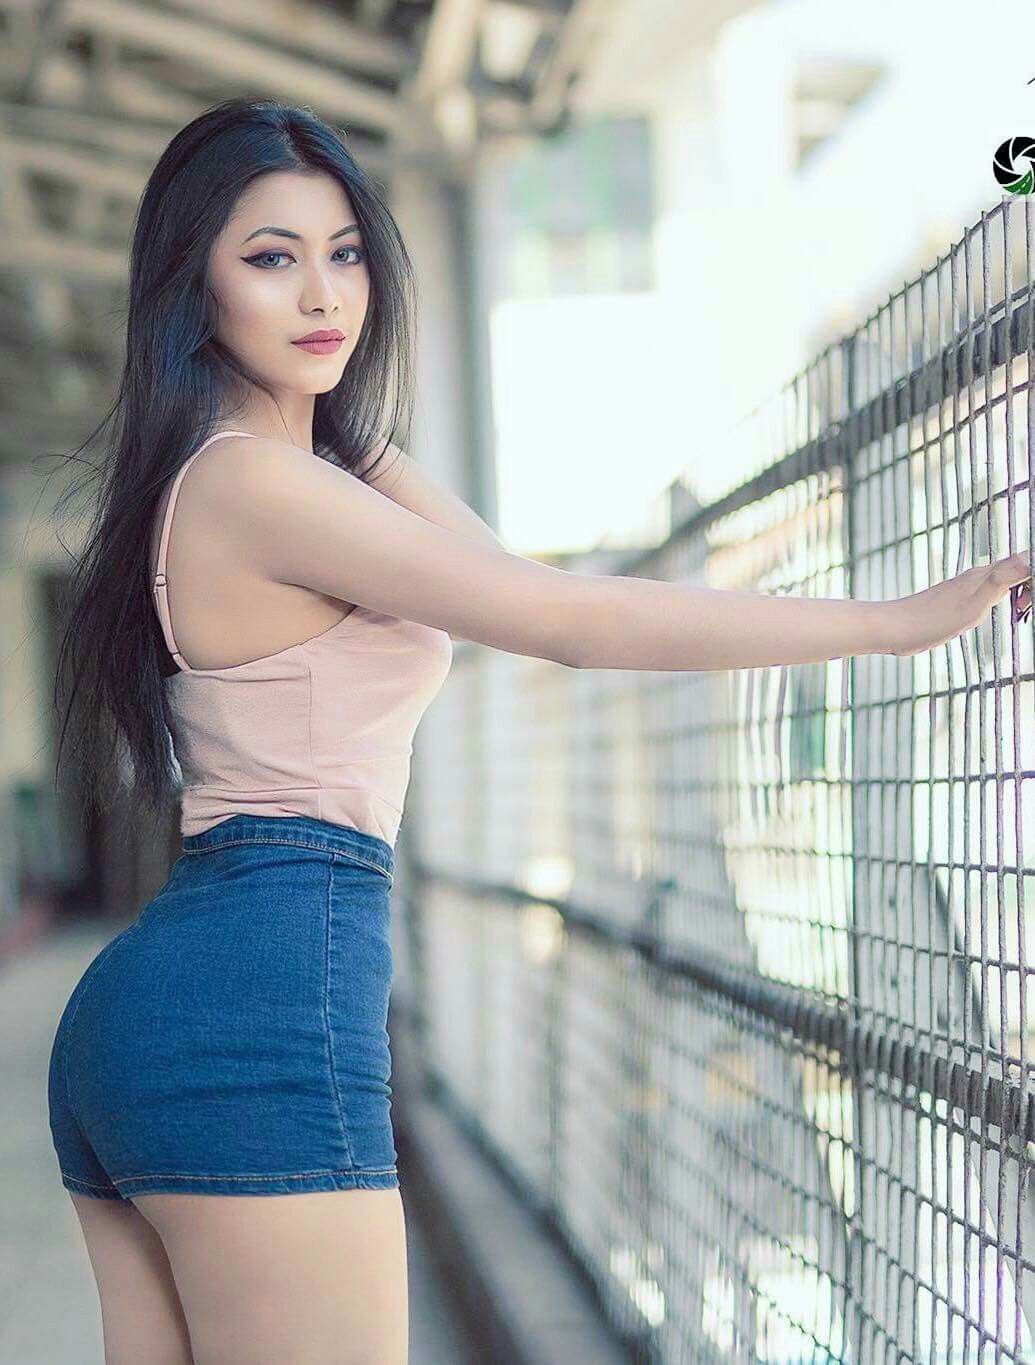 Su Hlaing Win  Myanmar Model Girls  Actresses In 2019 -3782